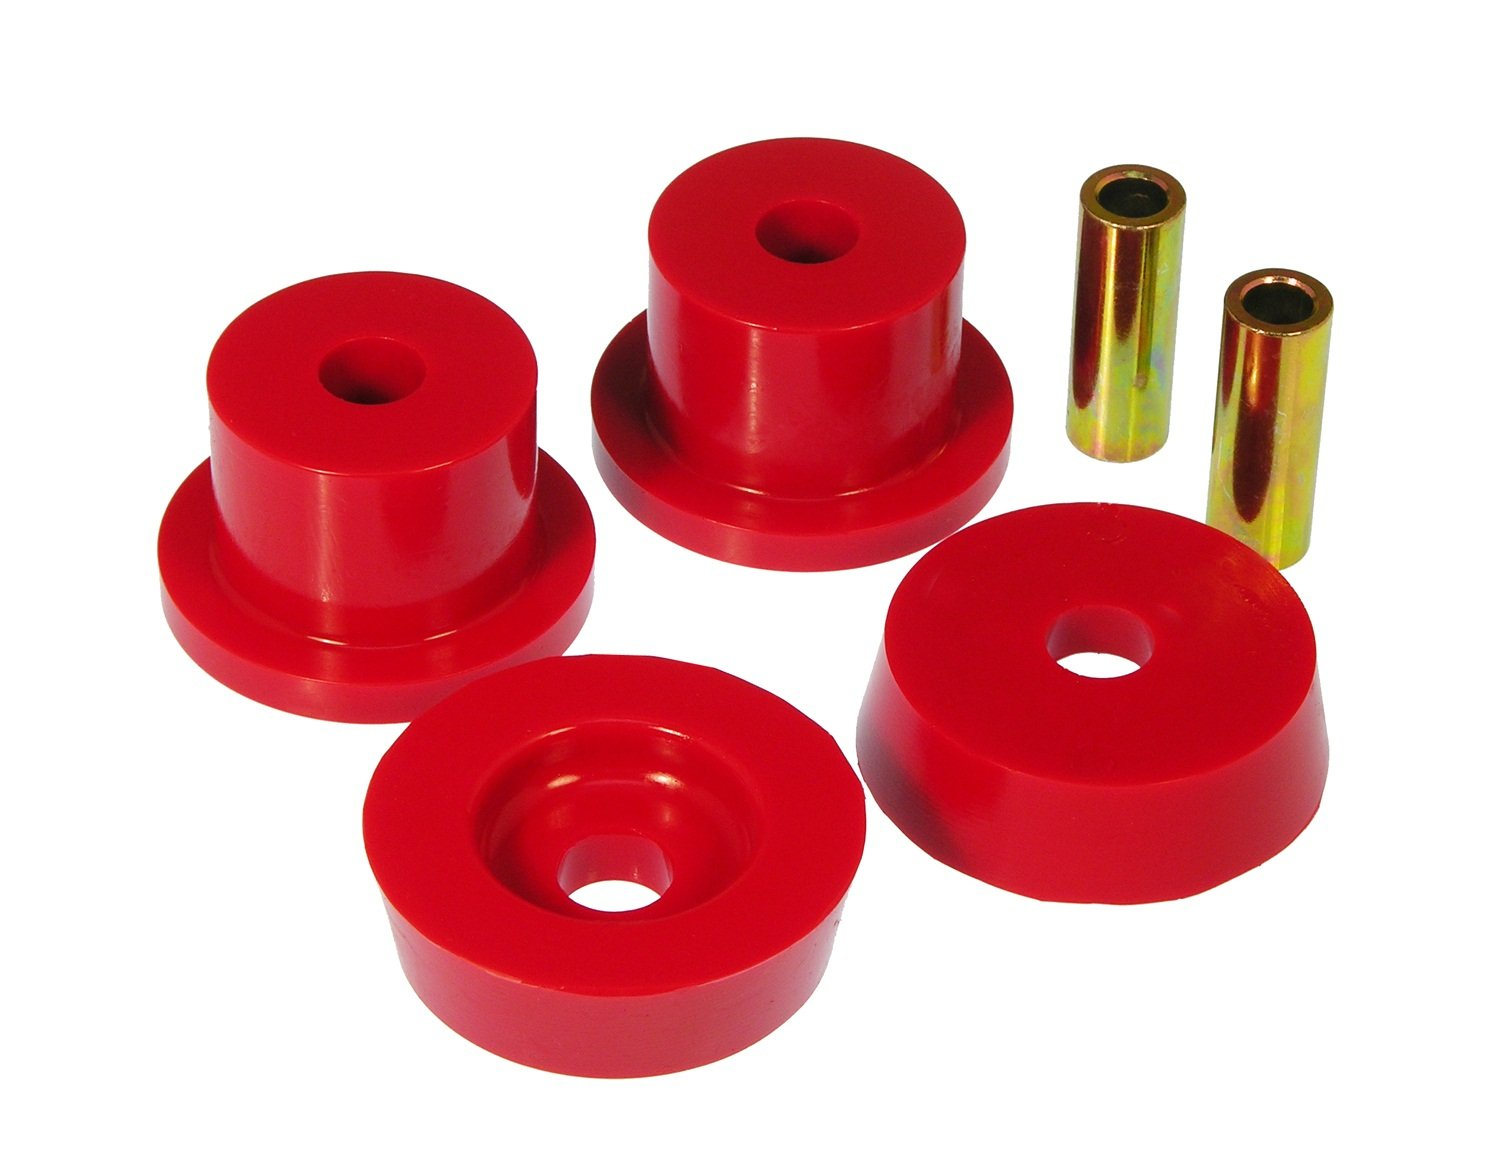 Prothane 12-1601 Differential Bushing Set